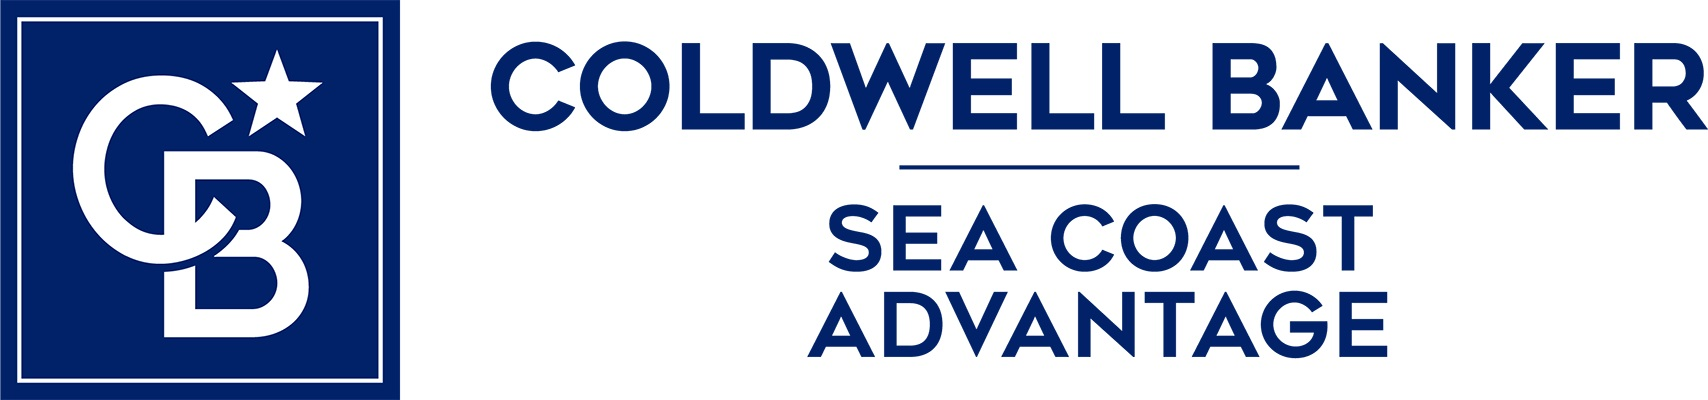 Carol Averitte - Coldwell Banker Sea Coast Advantage Realty Logo